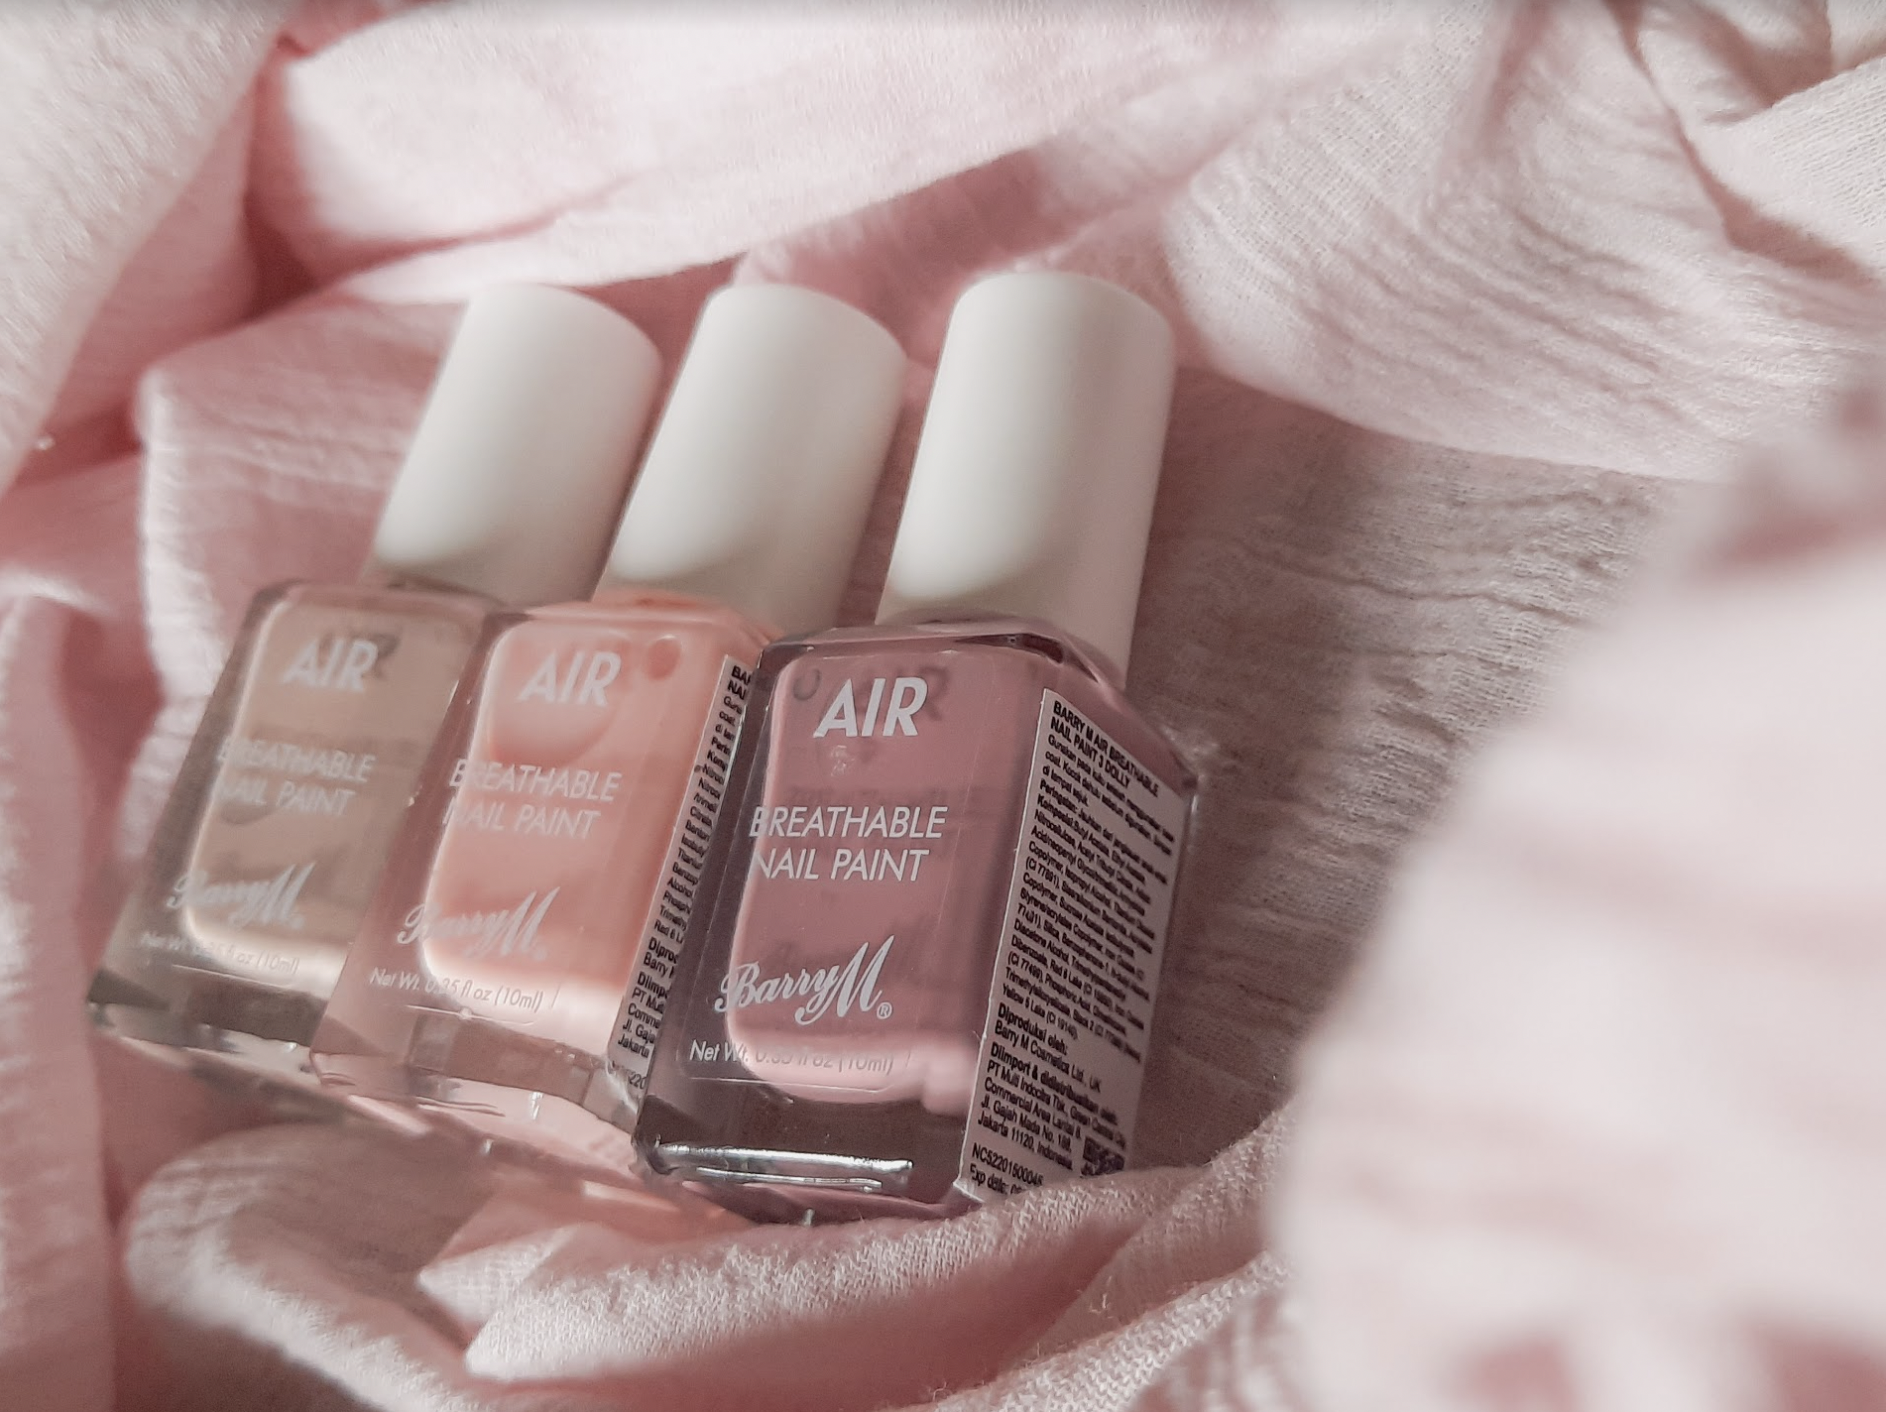 Barry M Breathable Nude Colors